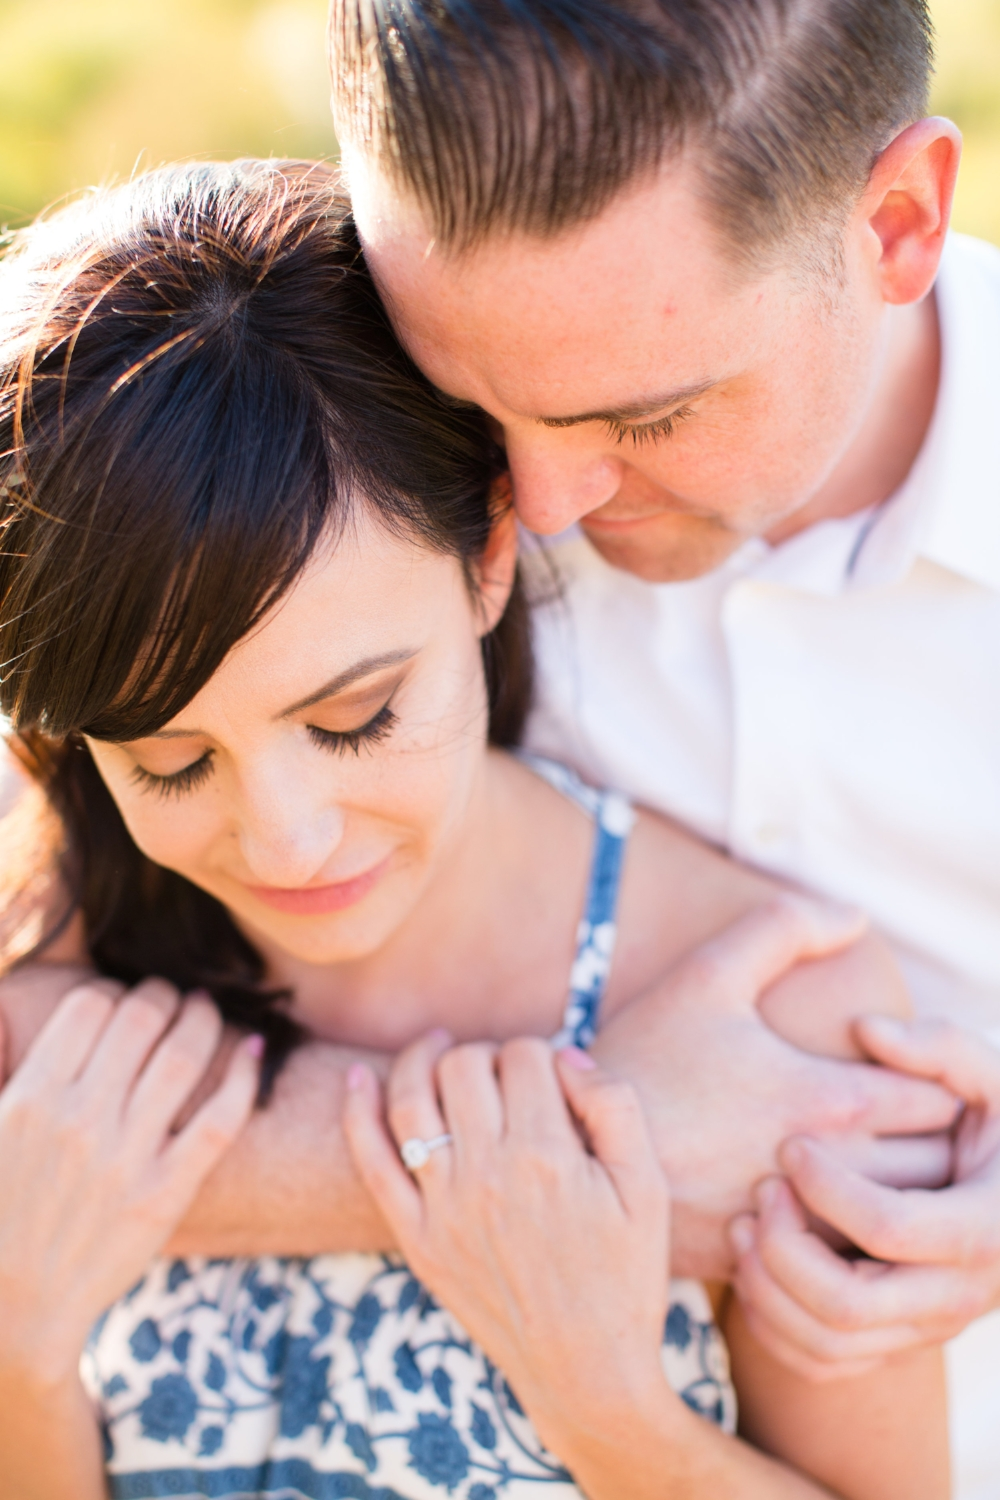 Romantic Engagement Photography with Ring and Eyelash Extensions. Hair and Makeup by Vanity Belle in Orange County (Costa Mesa) and San Diego (La Jolla).